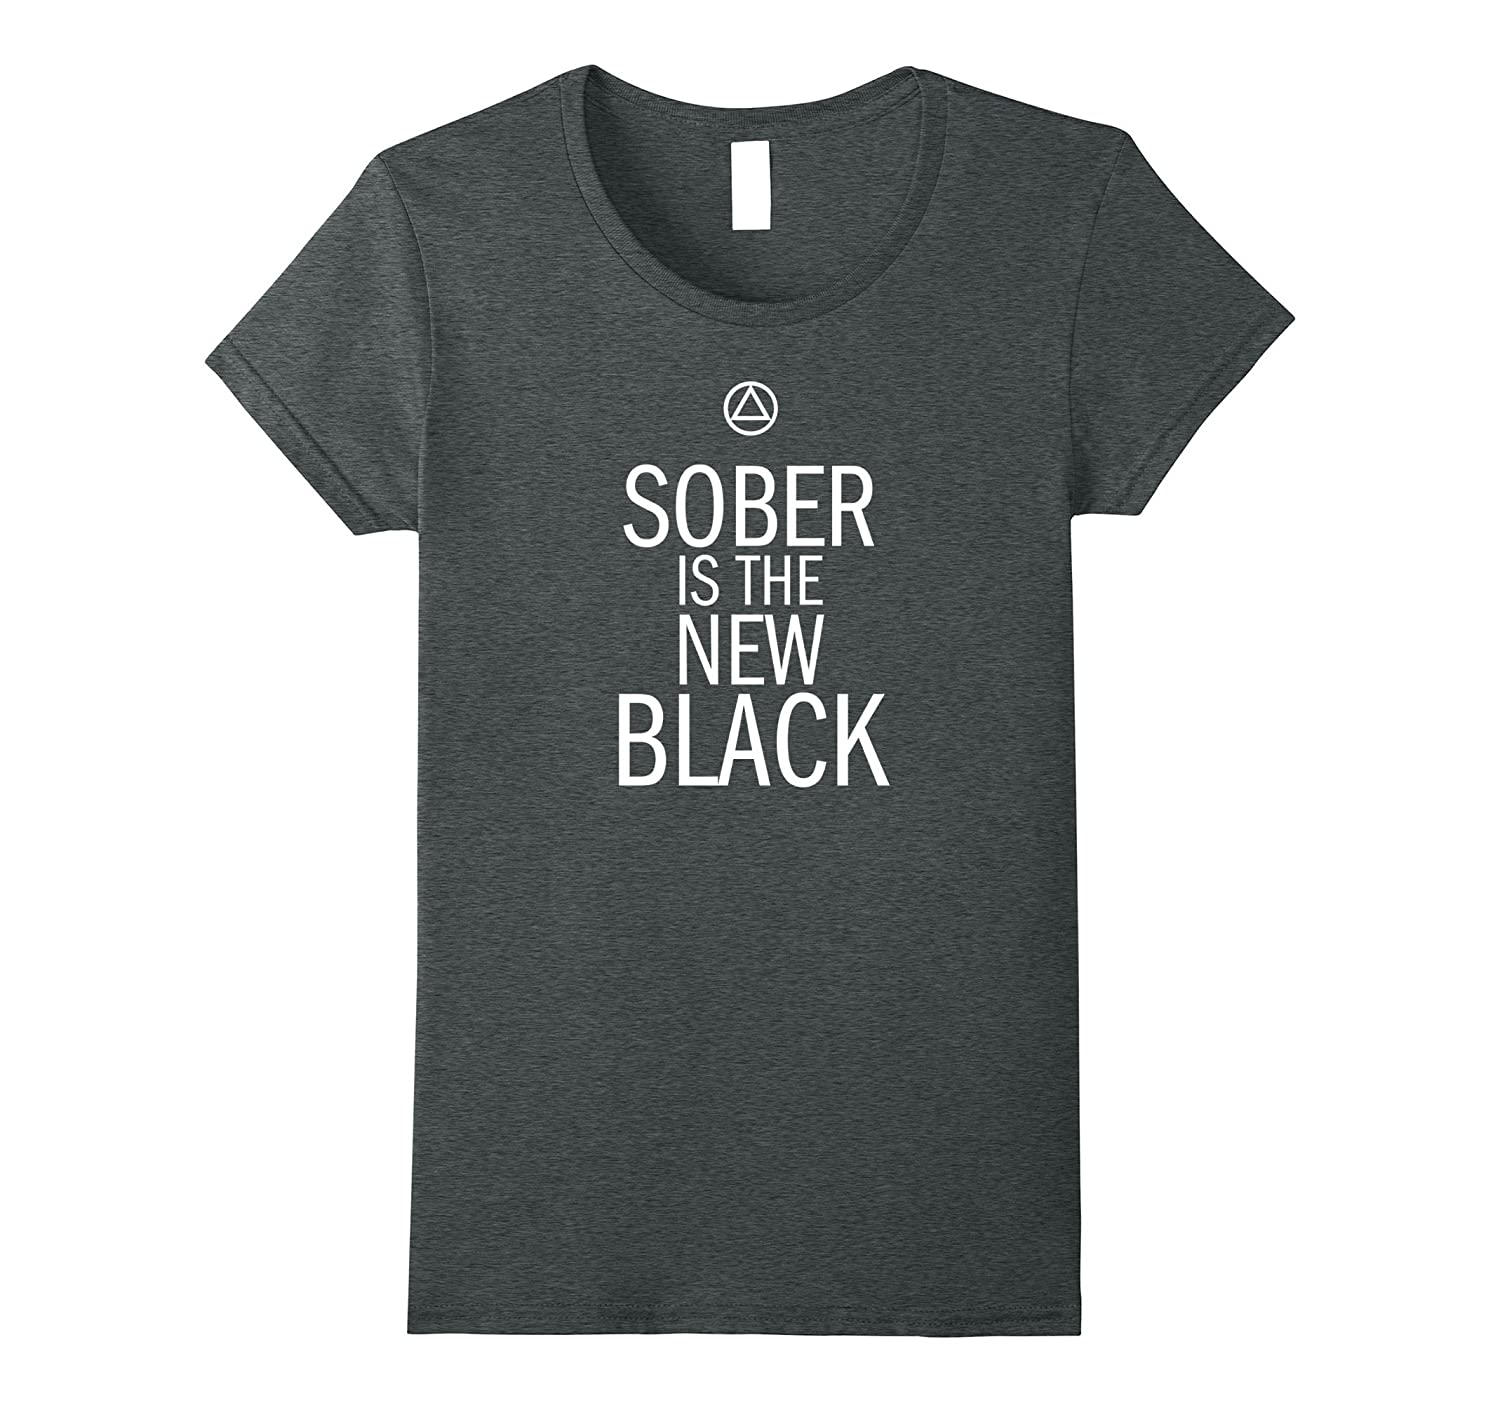 'Sober Is The New Black' – Funny AA Recovery T-Shirt